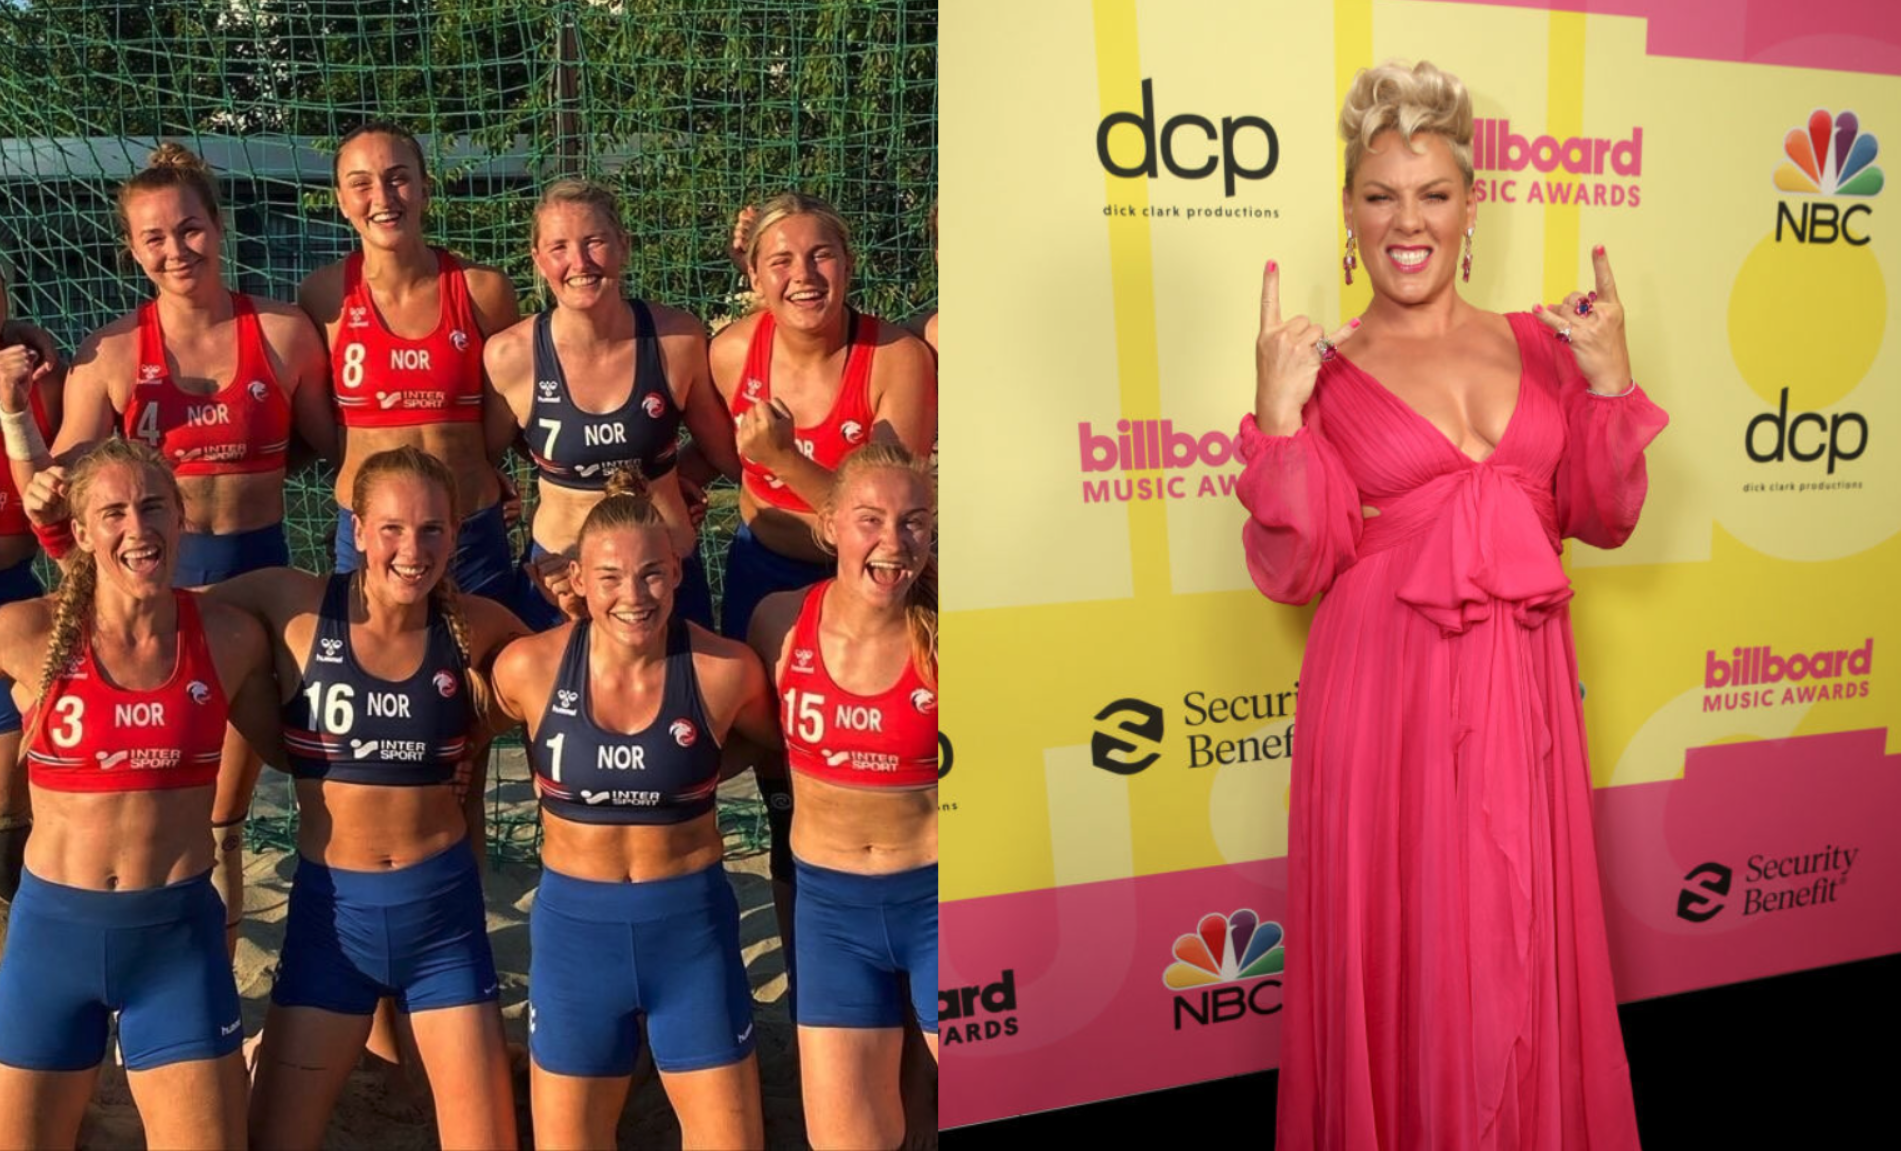 Pink offers to pay fine for handball team that broke 'sexist' uniform rule